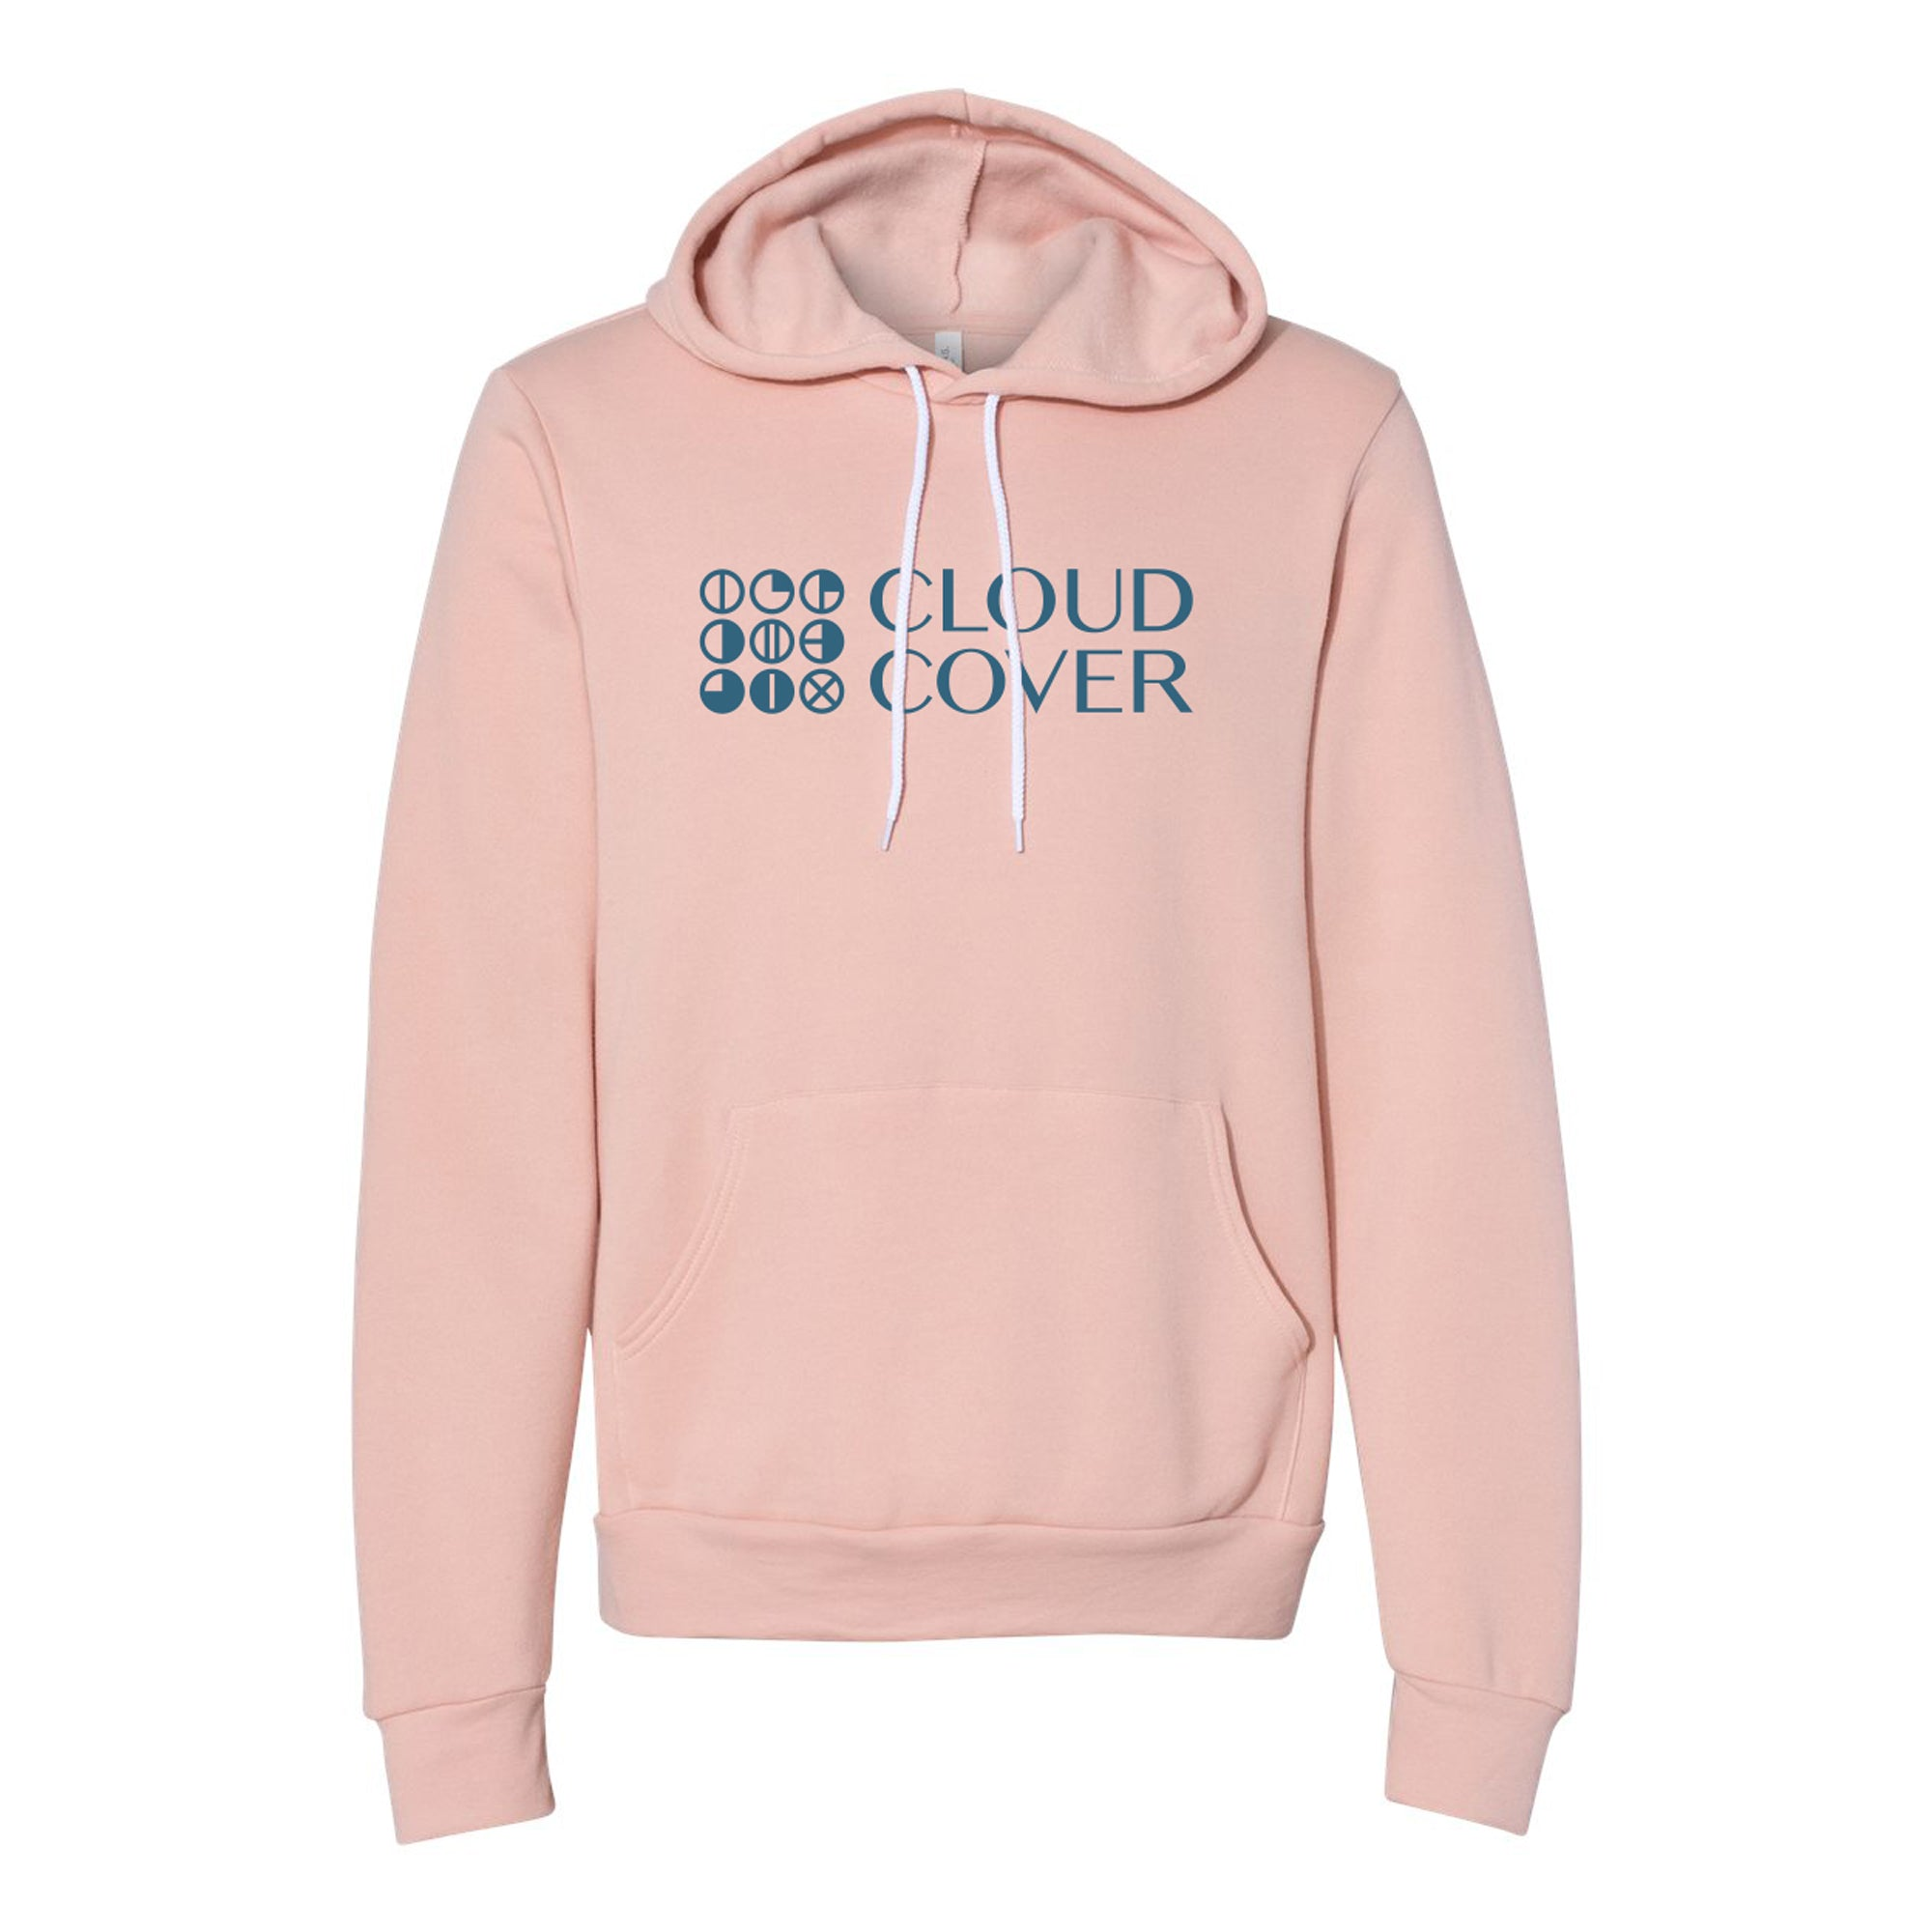 SIDESTACK LOGO Pullover Hoodie - Peach